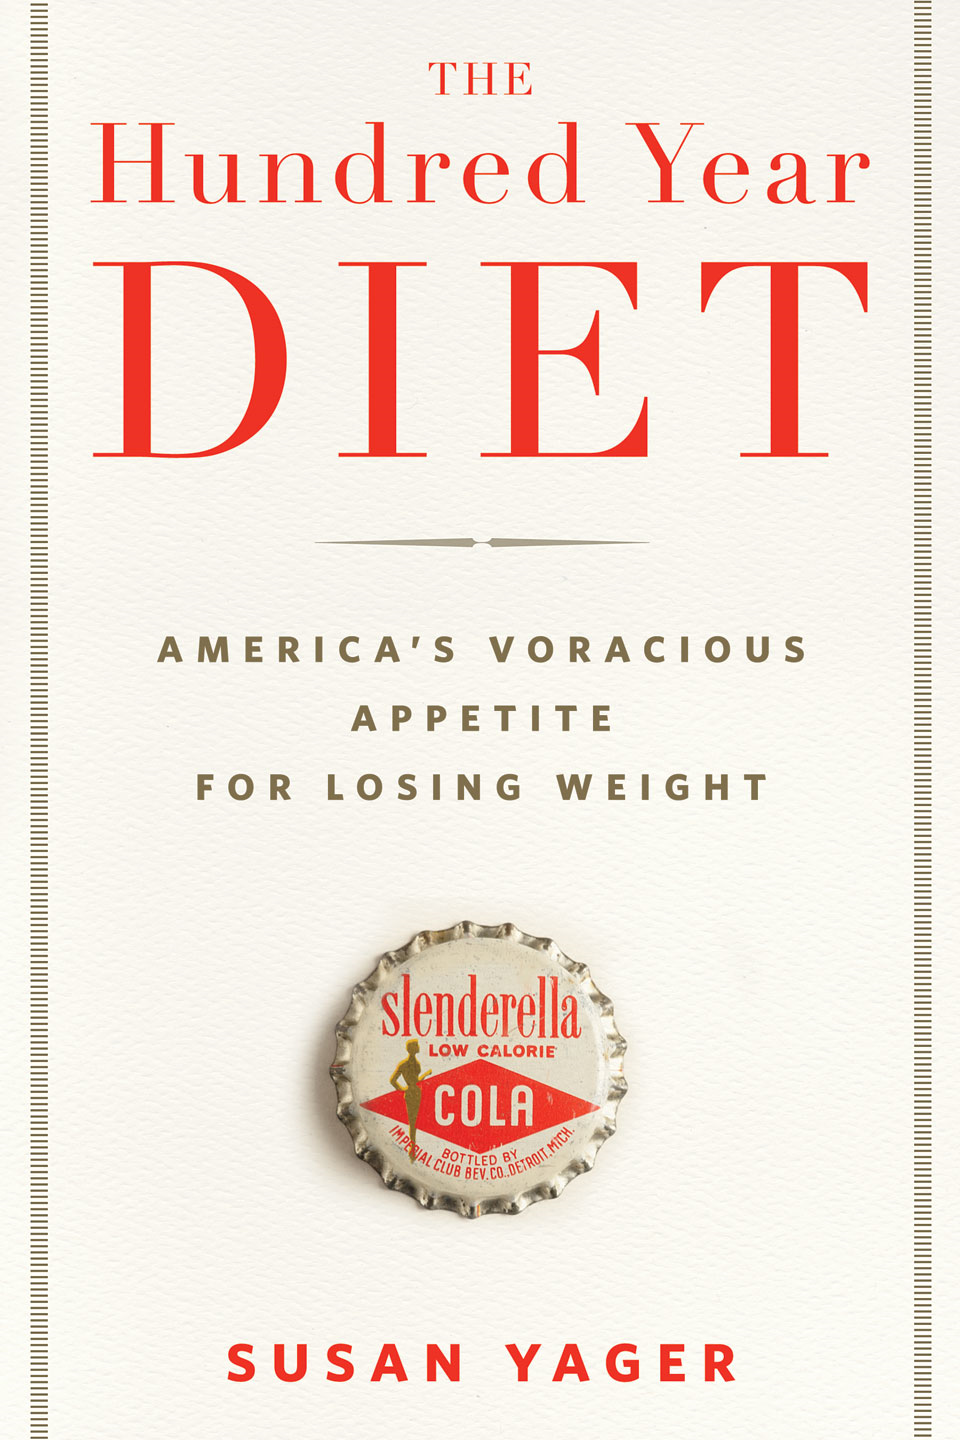 The Hundred Year Diet: America's Voracious Appetite for Losing Weight By: Susan Yager